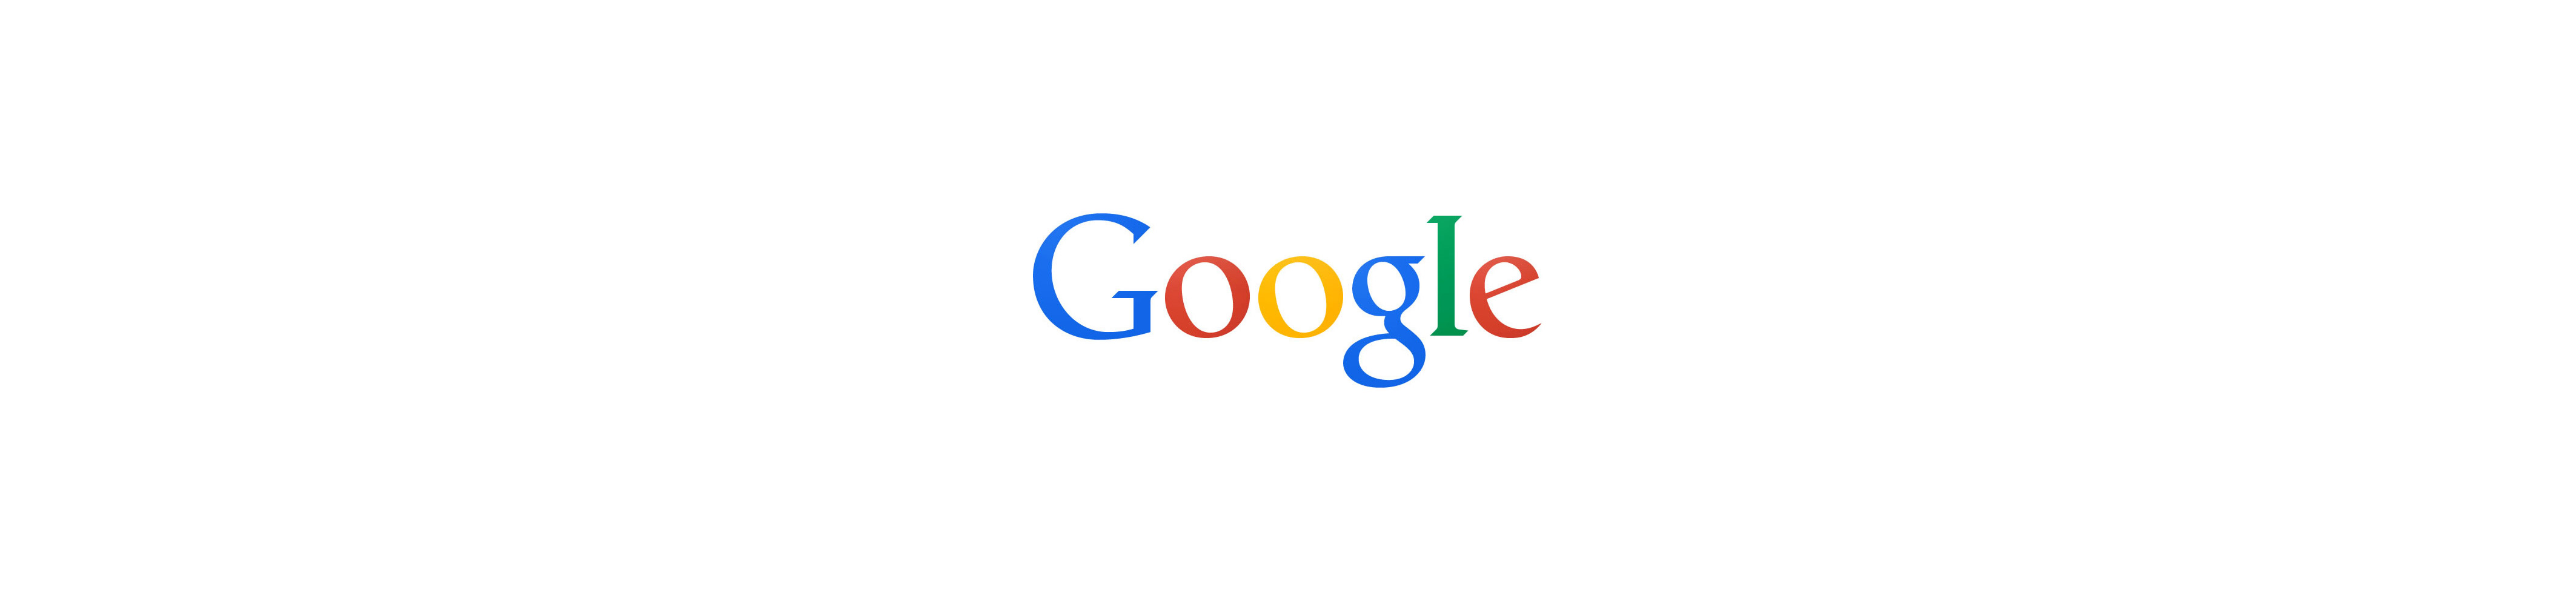 Google logo for thumbnail – use this one